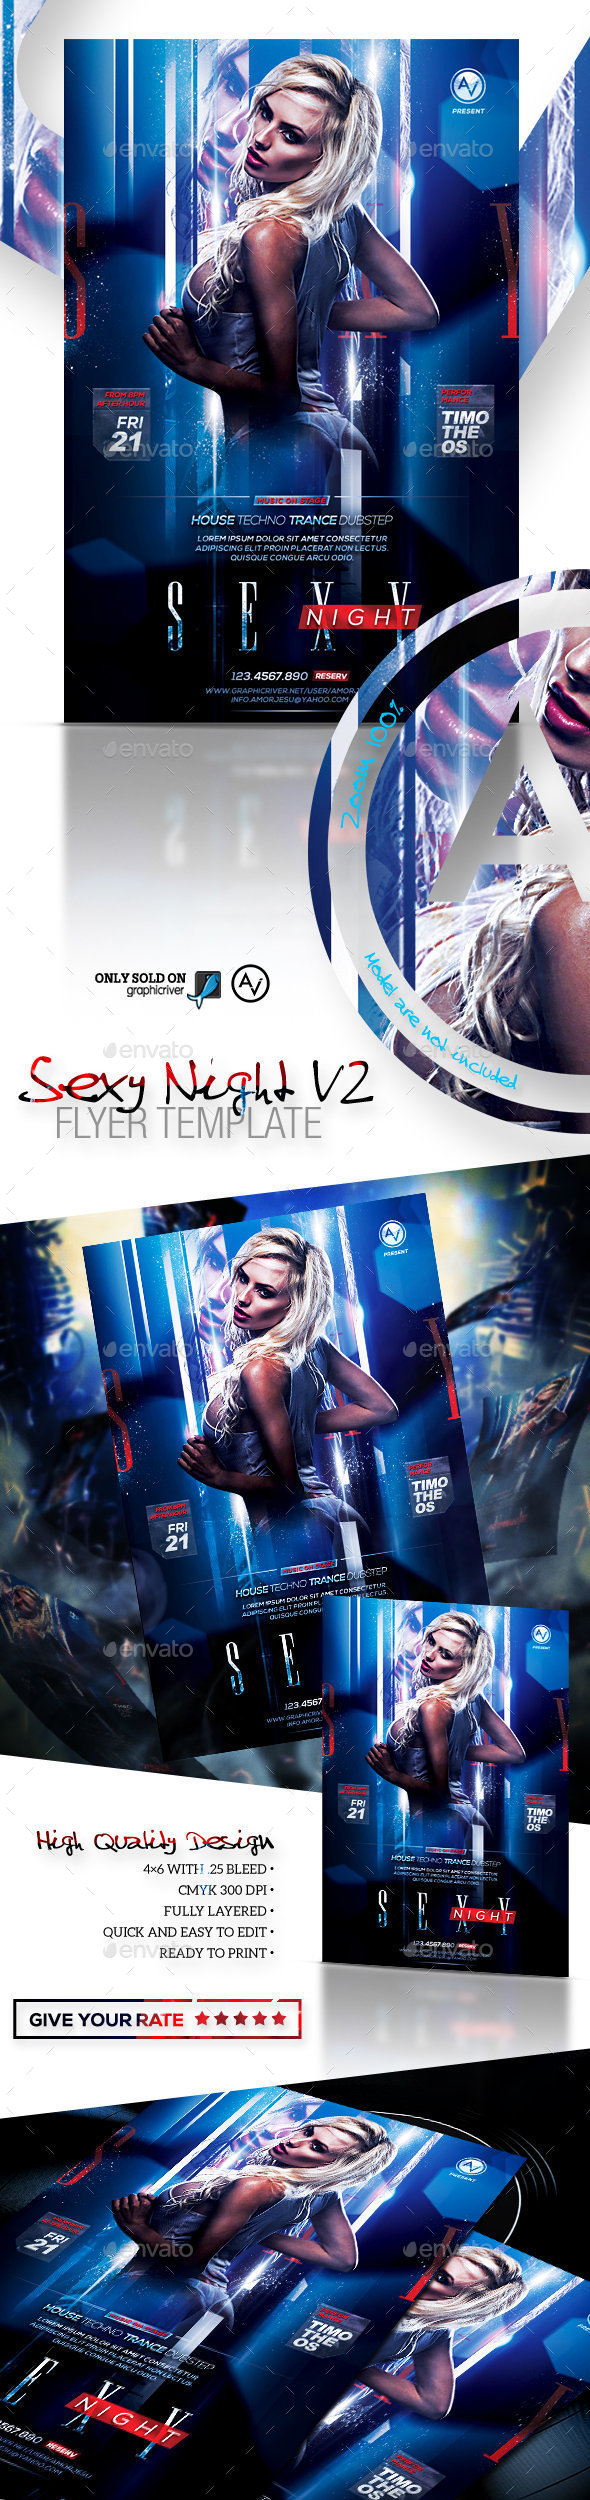 Sexy Night Flyer Template V2 - Clubs & Parties Events